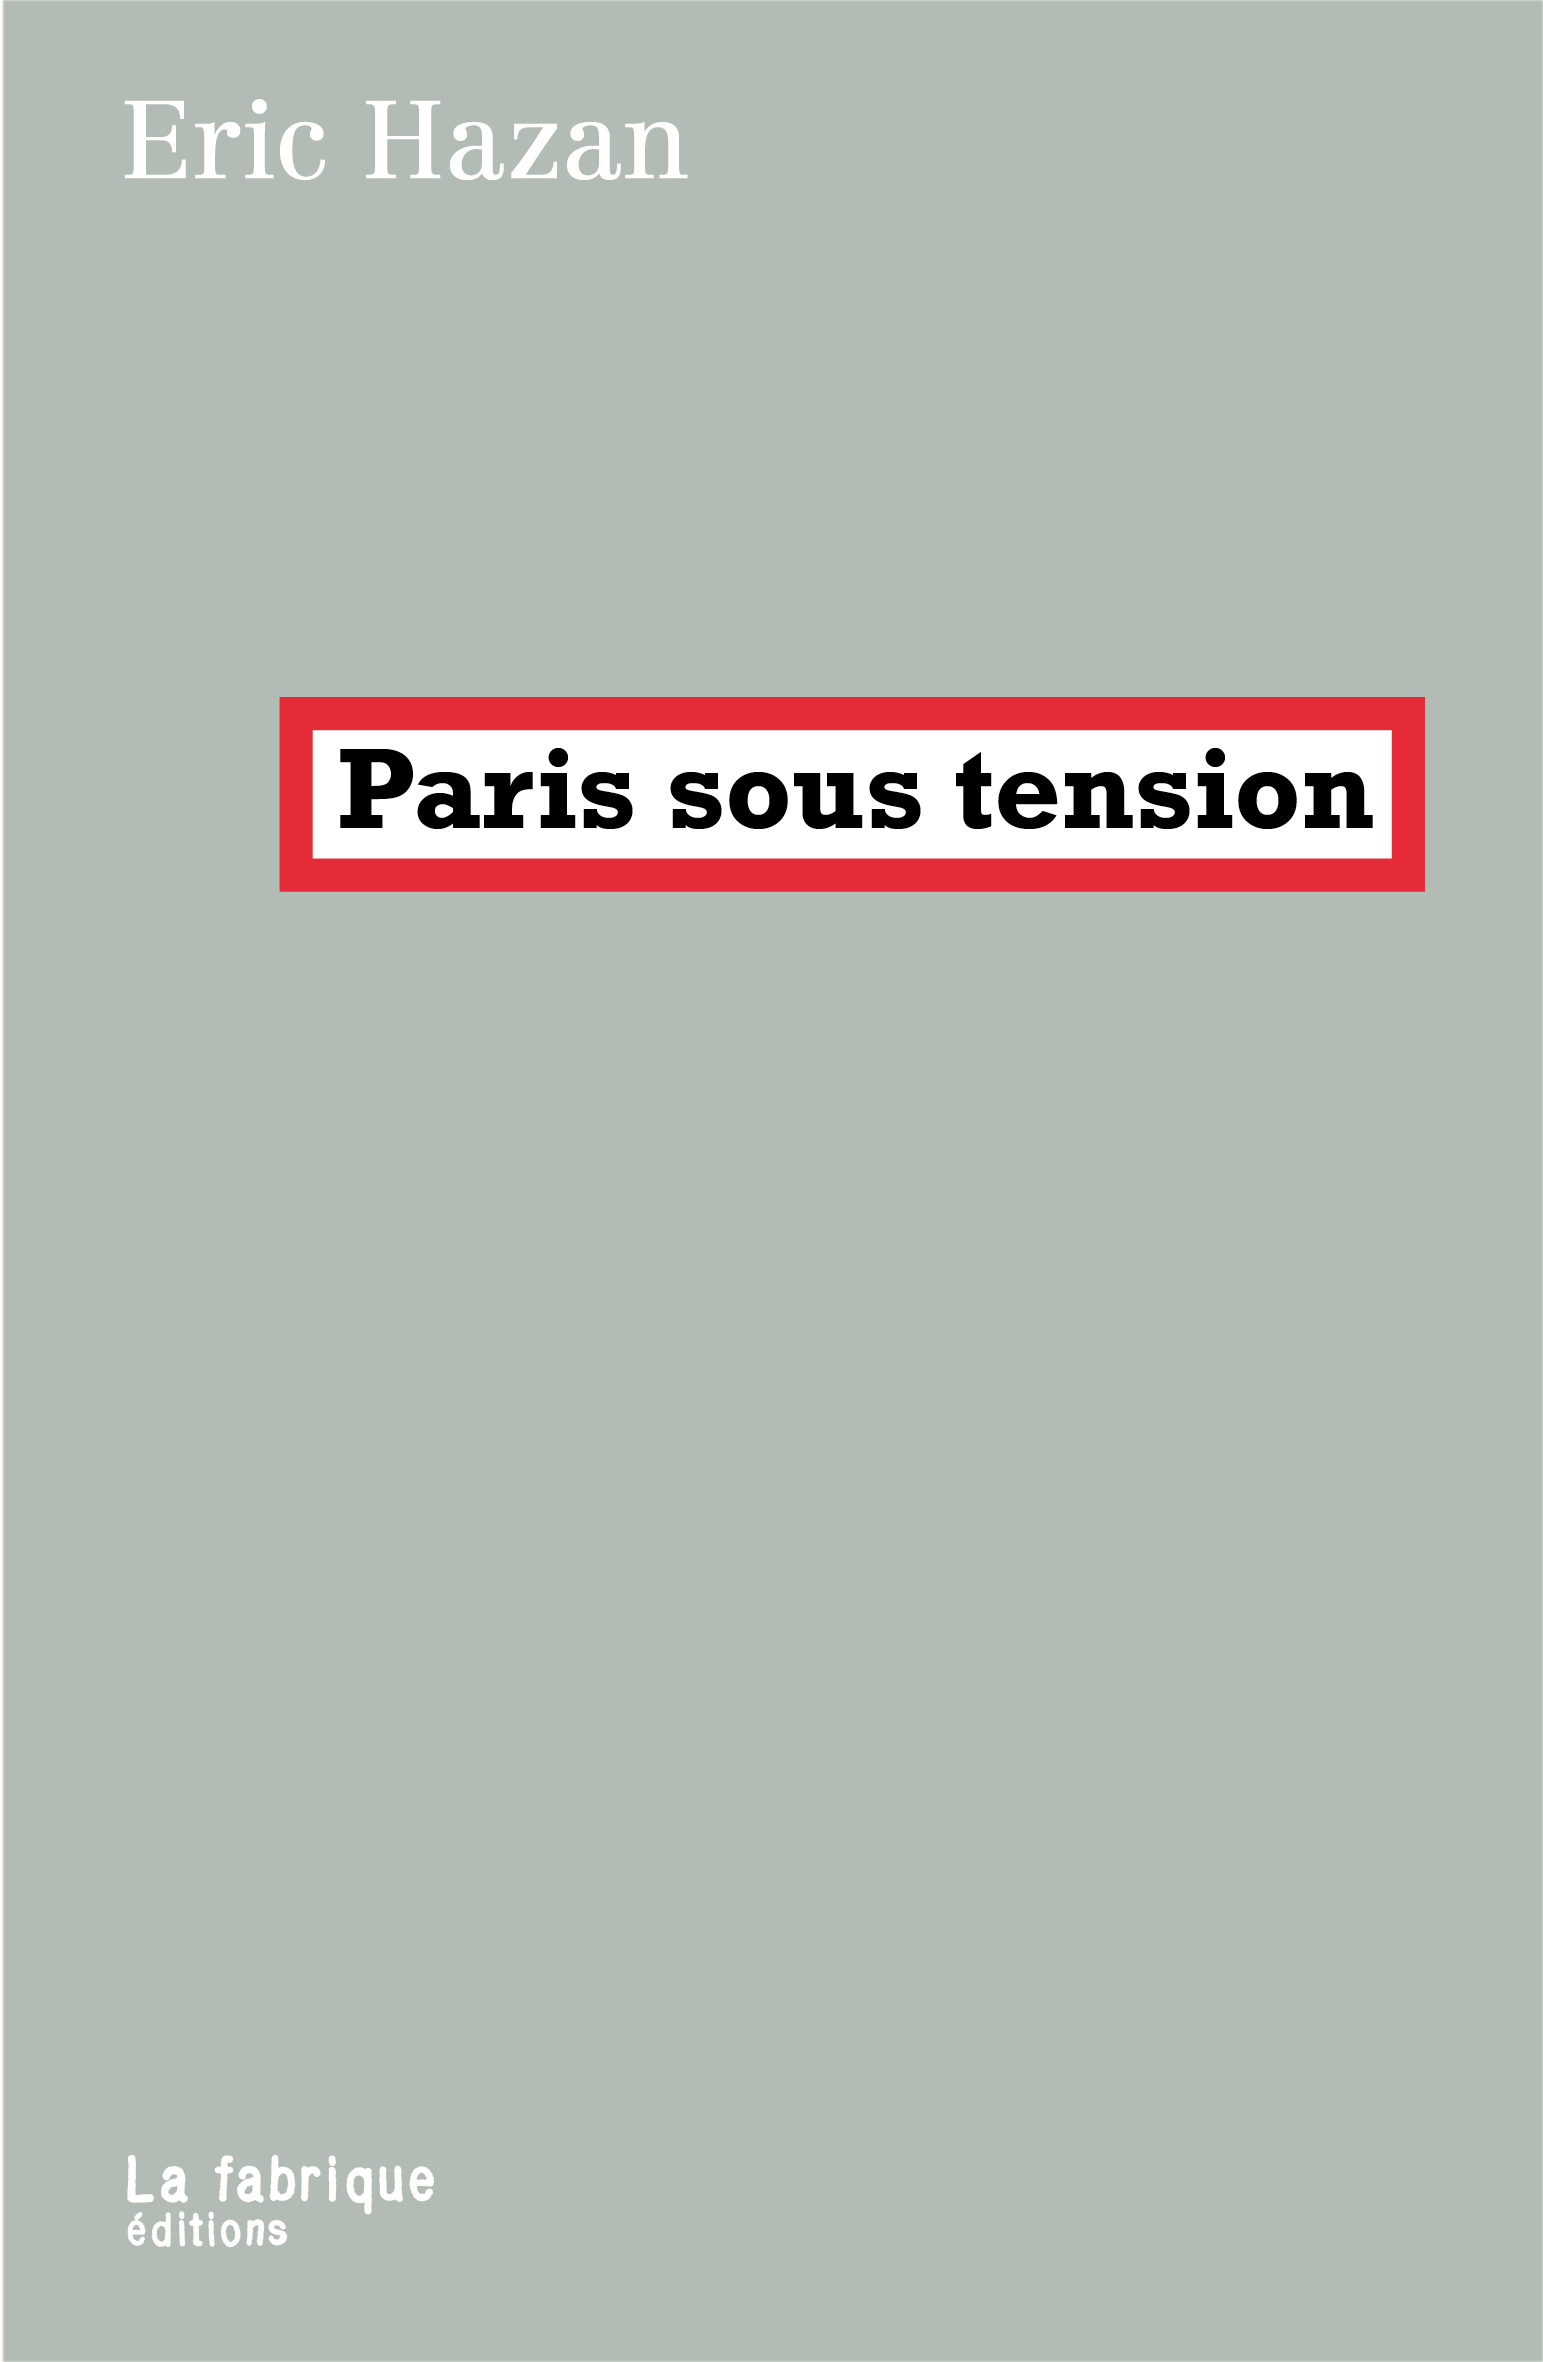 Paris sous tension